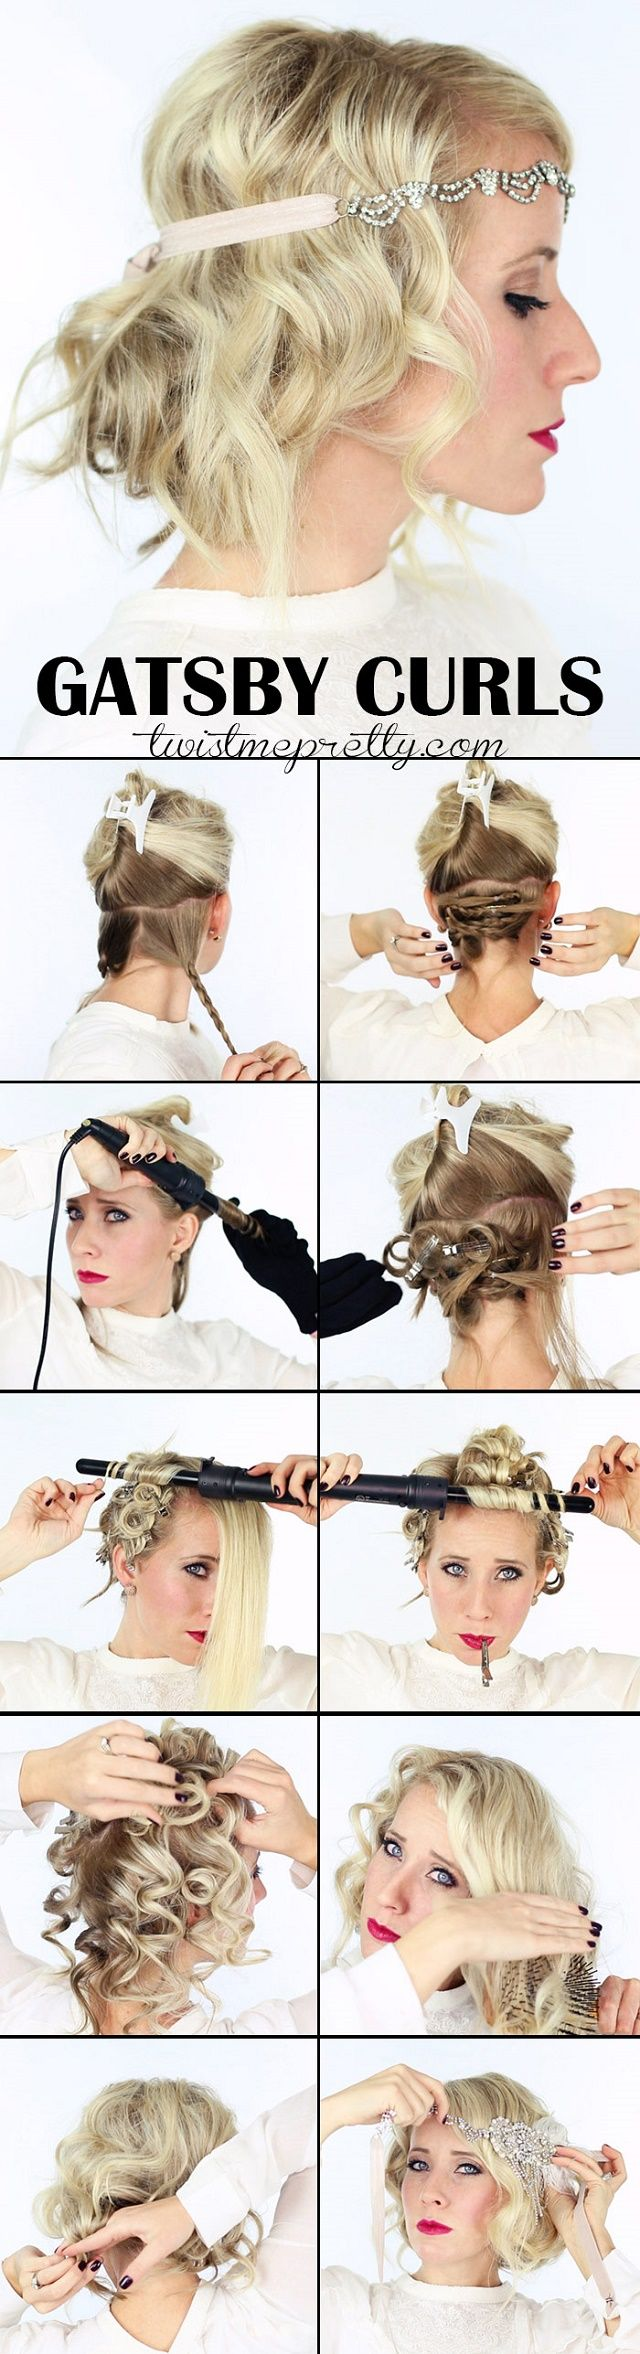 The Great Gatsby Inspired Hairstyle Tutorial Alldaychic Vintage Hairstyles Hair Styles Gatsby Hair